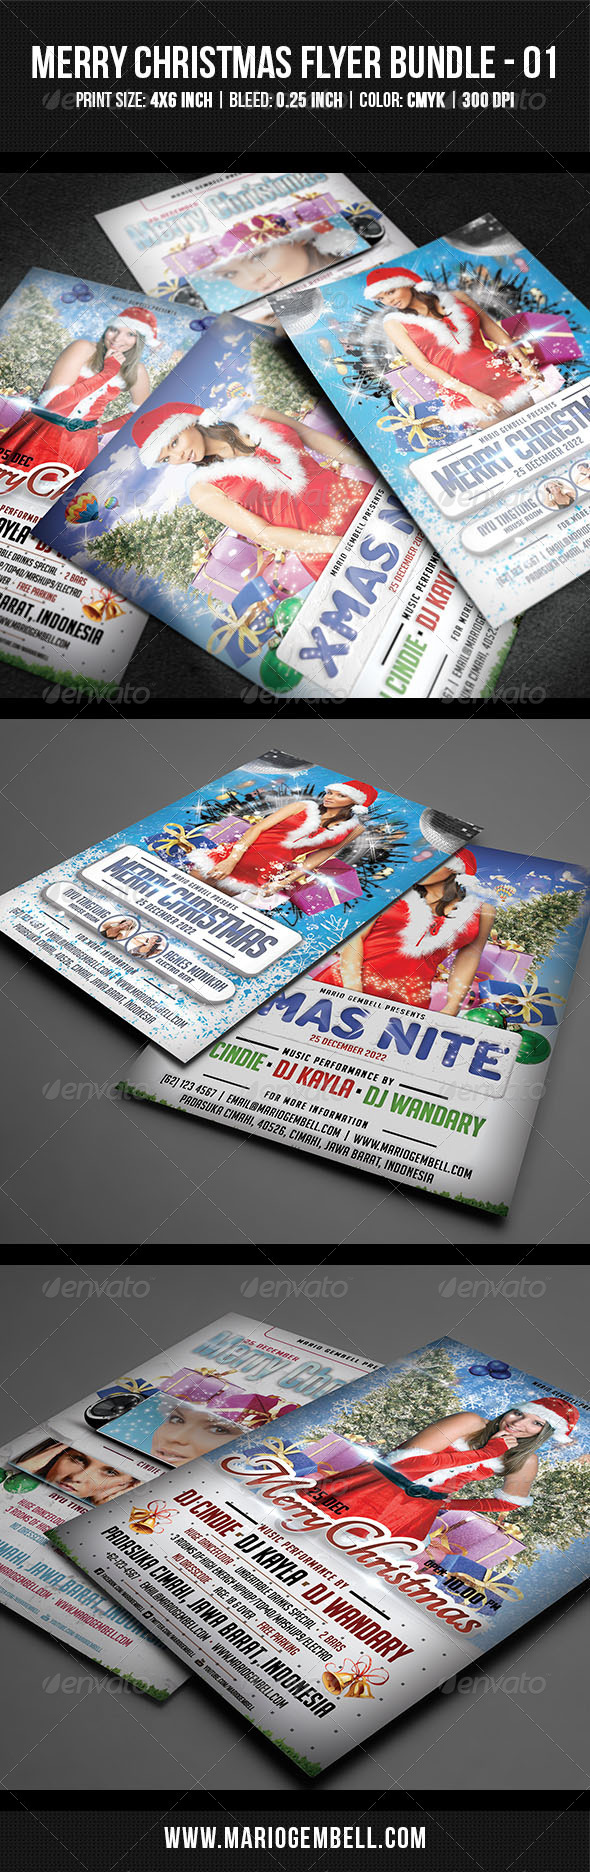 GraphicRiver Merry Christmas Flyer Bundle 01 3539833